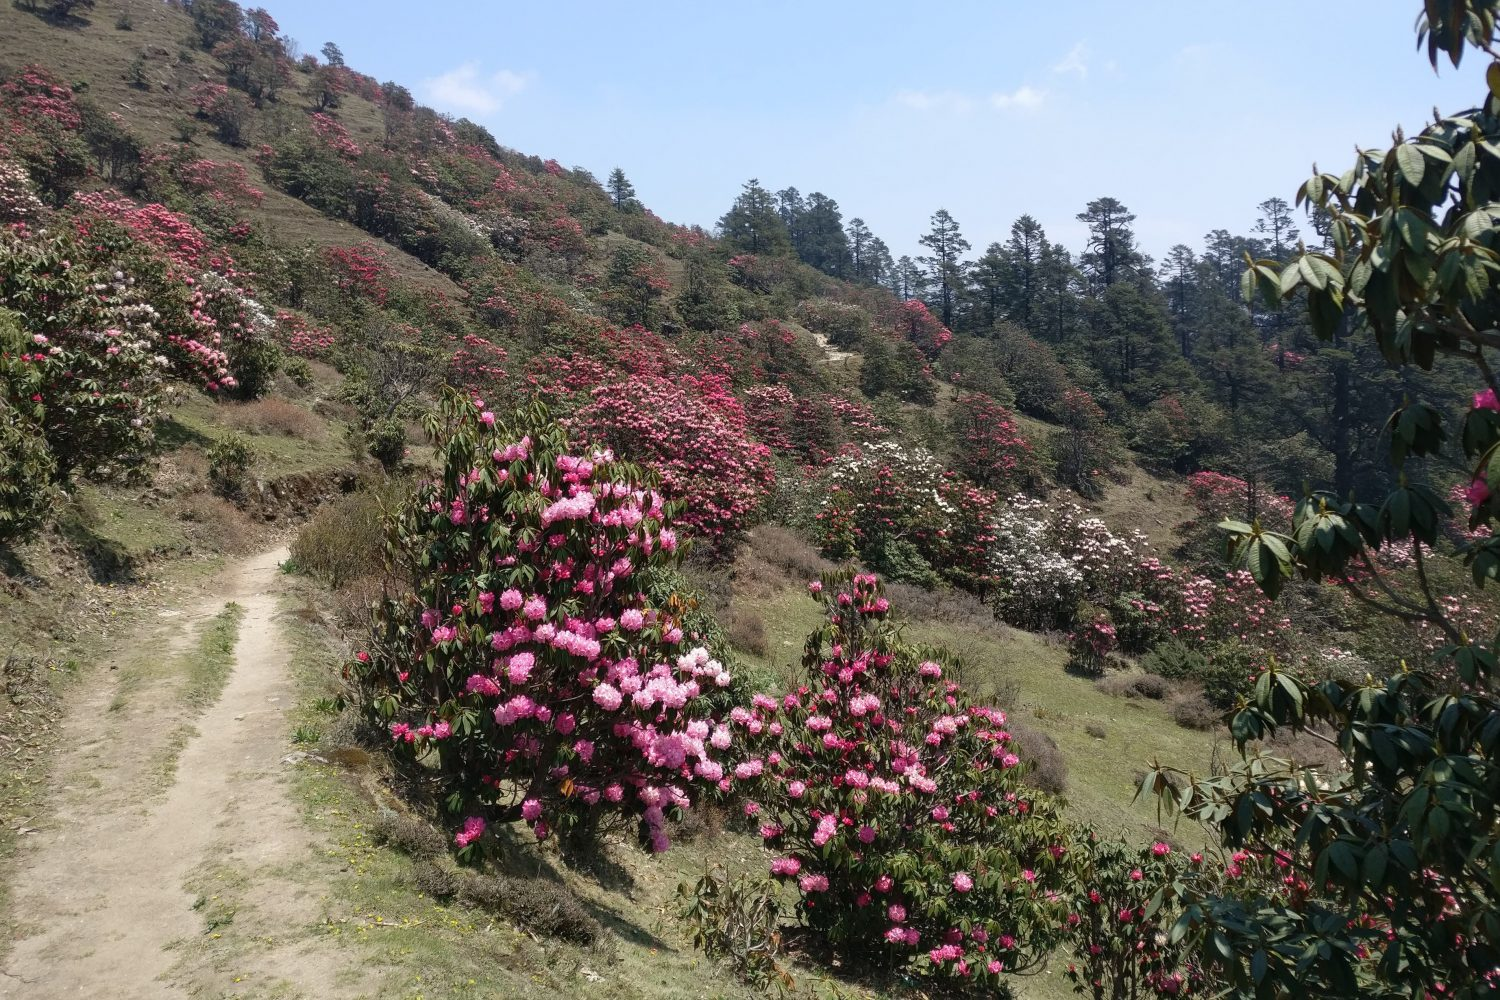 More rhododendrons on the Pikey Peak Trek